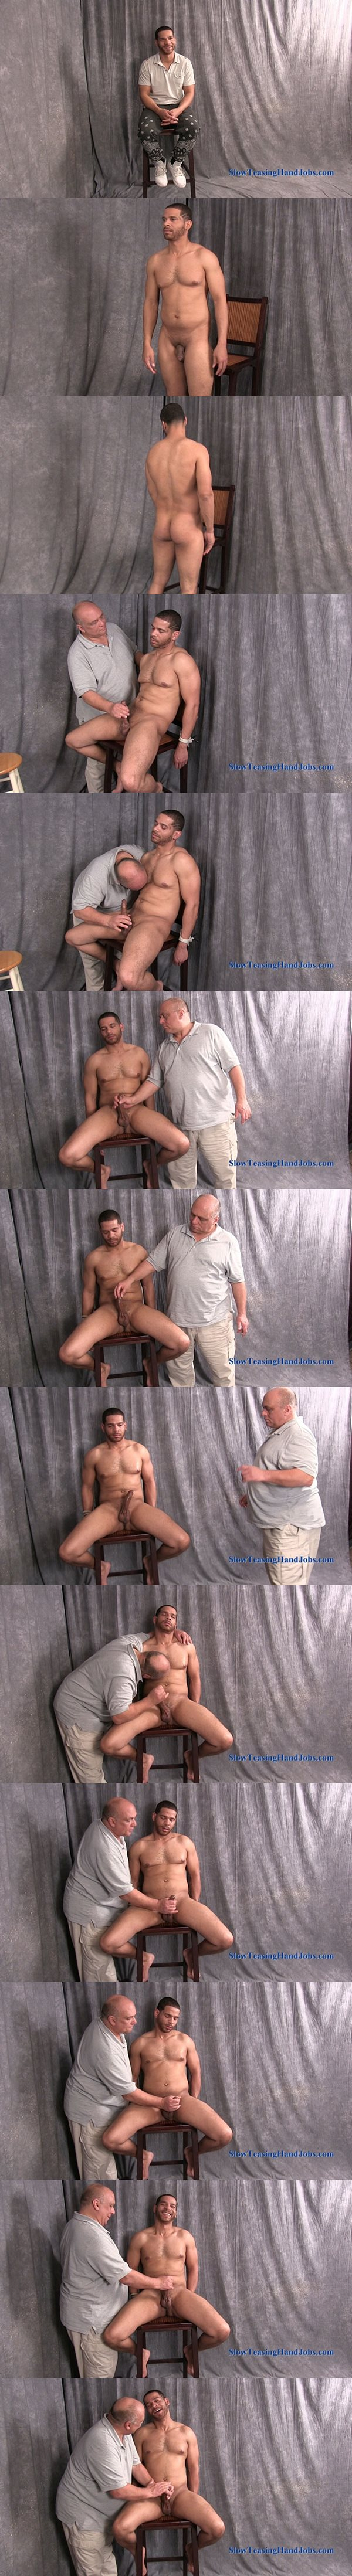 Hot bisexual cook Chris gets slowly edged and jerked at Slowteasinghandjobs 02